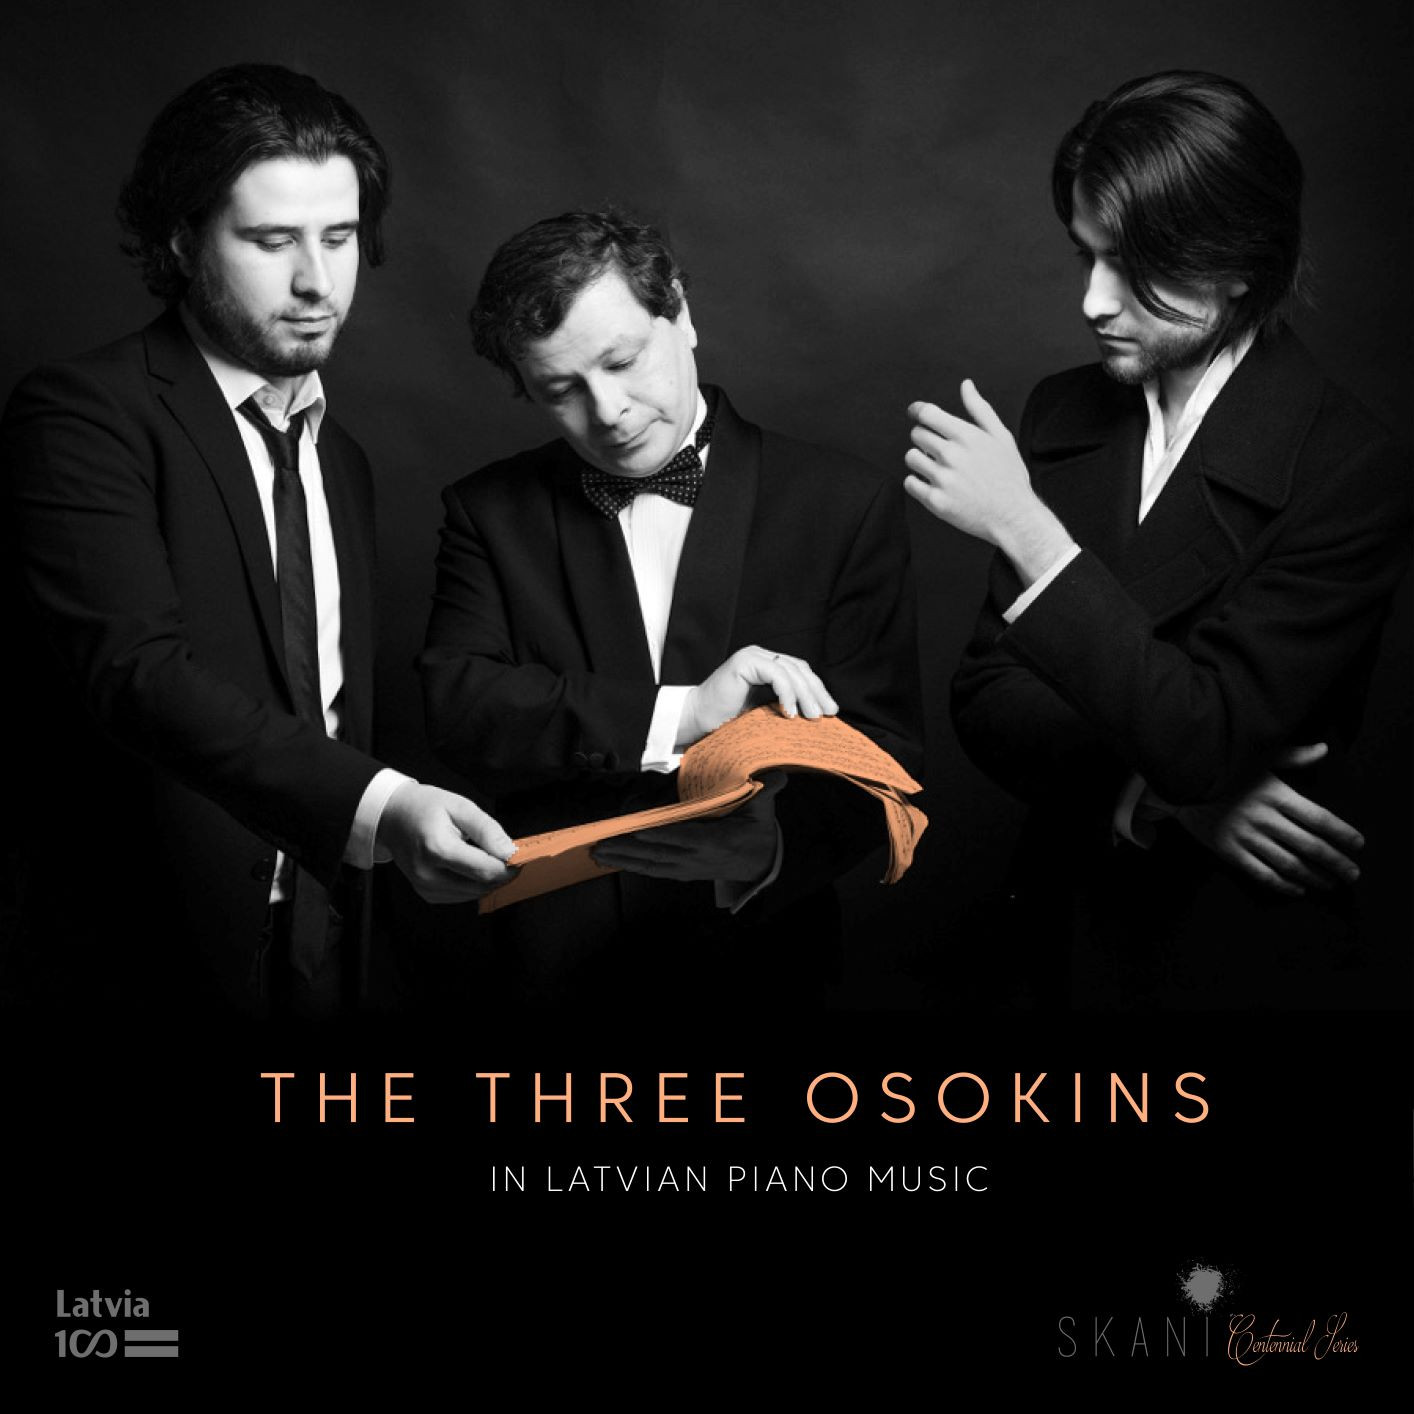 The Three Osokins in Latvian Piano Music